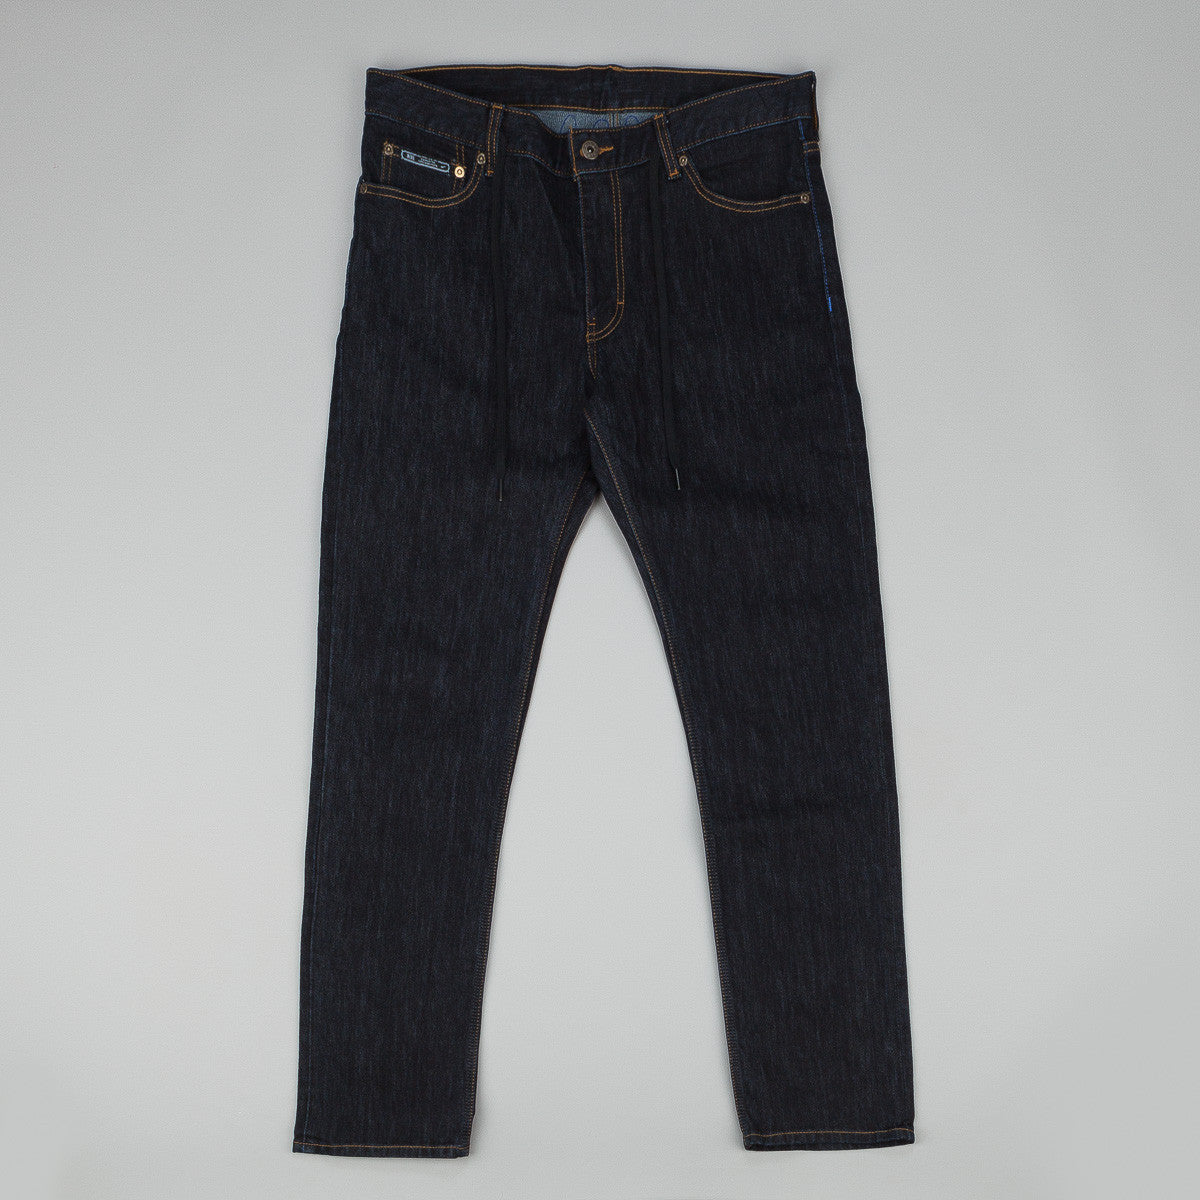 Nike SB P-Rod Signature 5 Pocket Denim Jeans